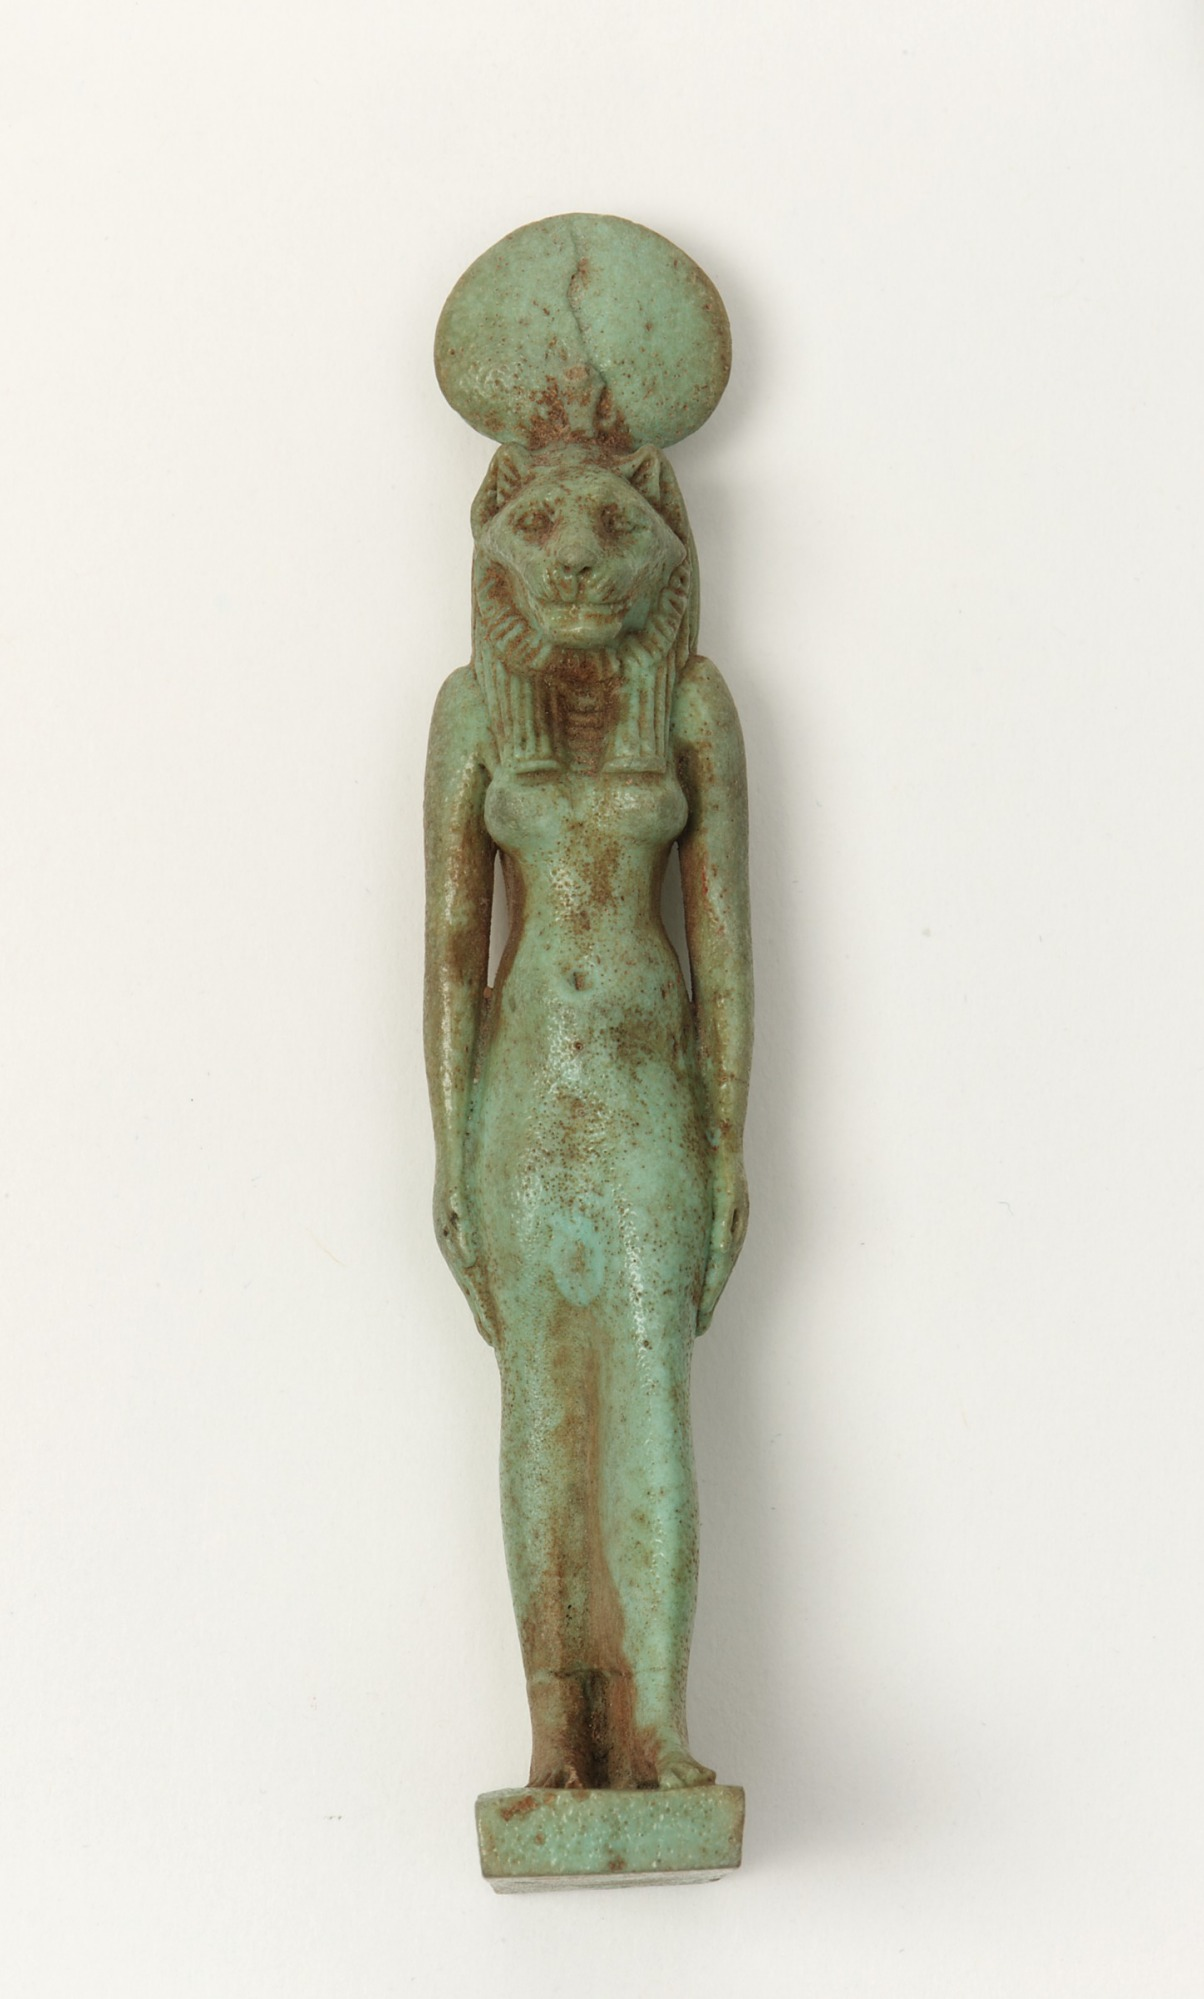 : Amulet of a goddess, perhaps Sakhmet